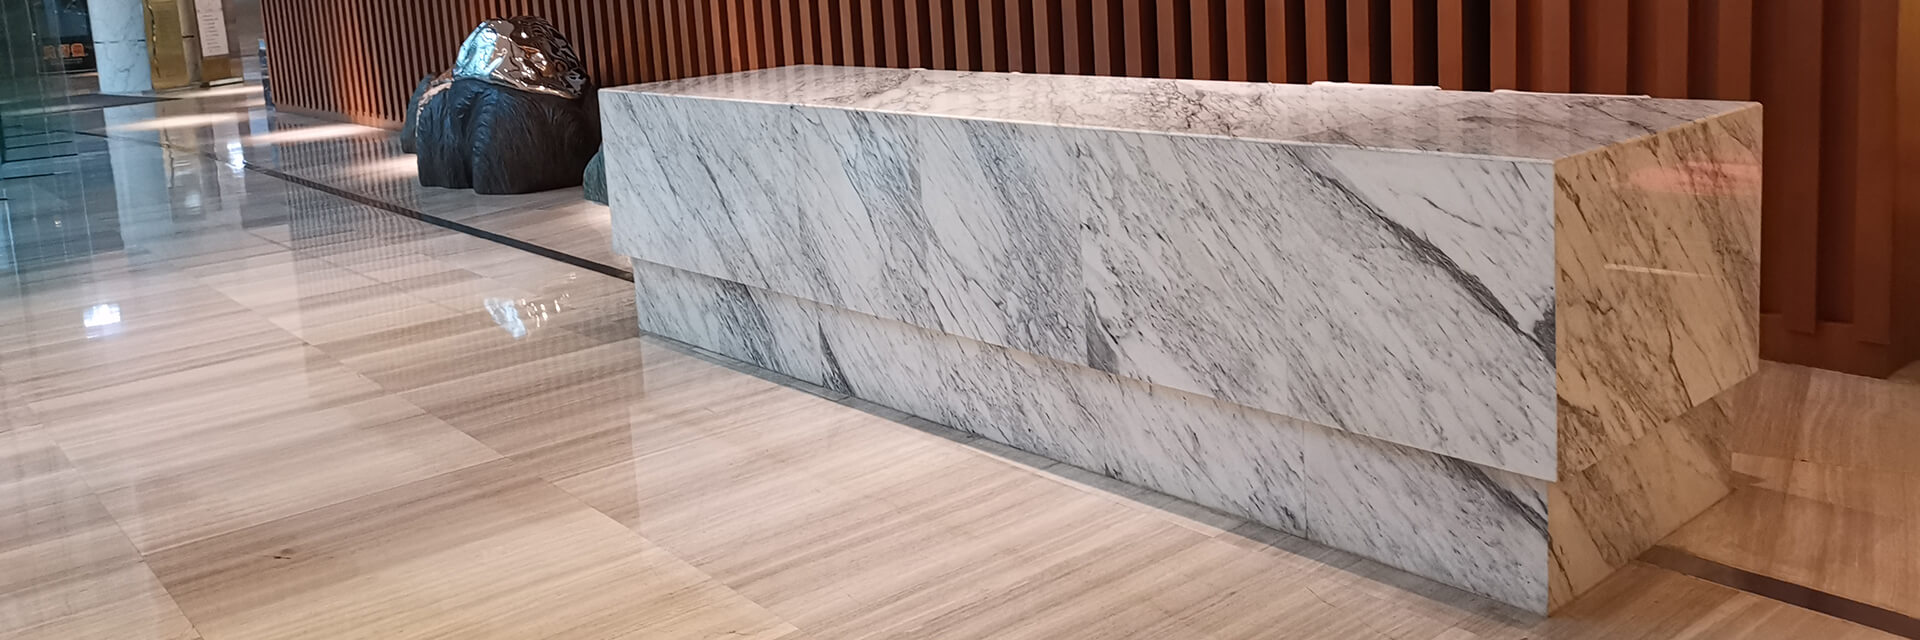 vieka stone marble project